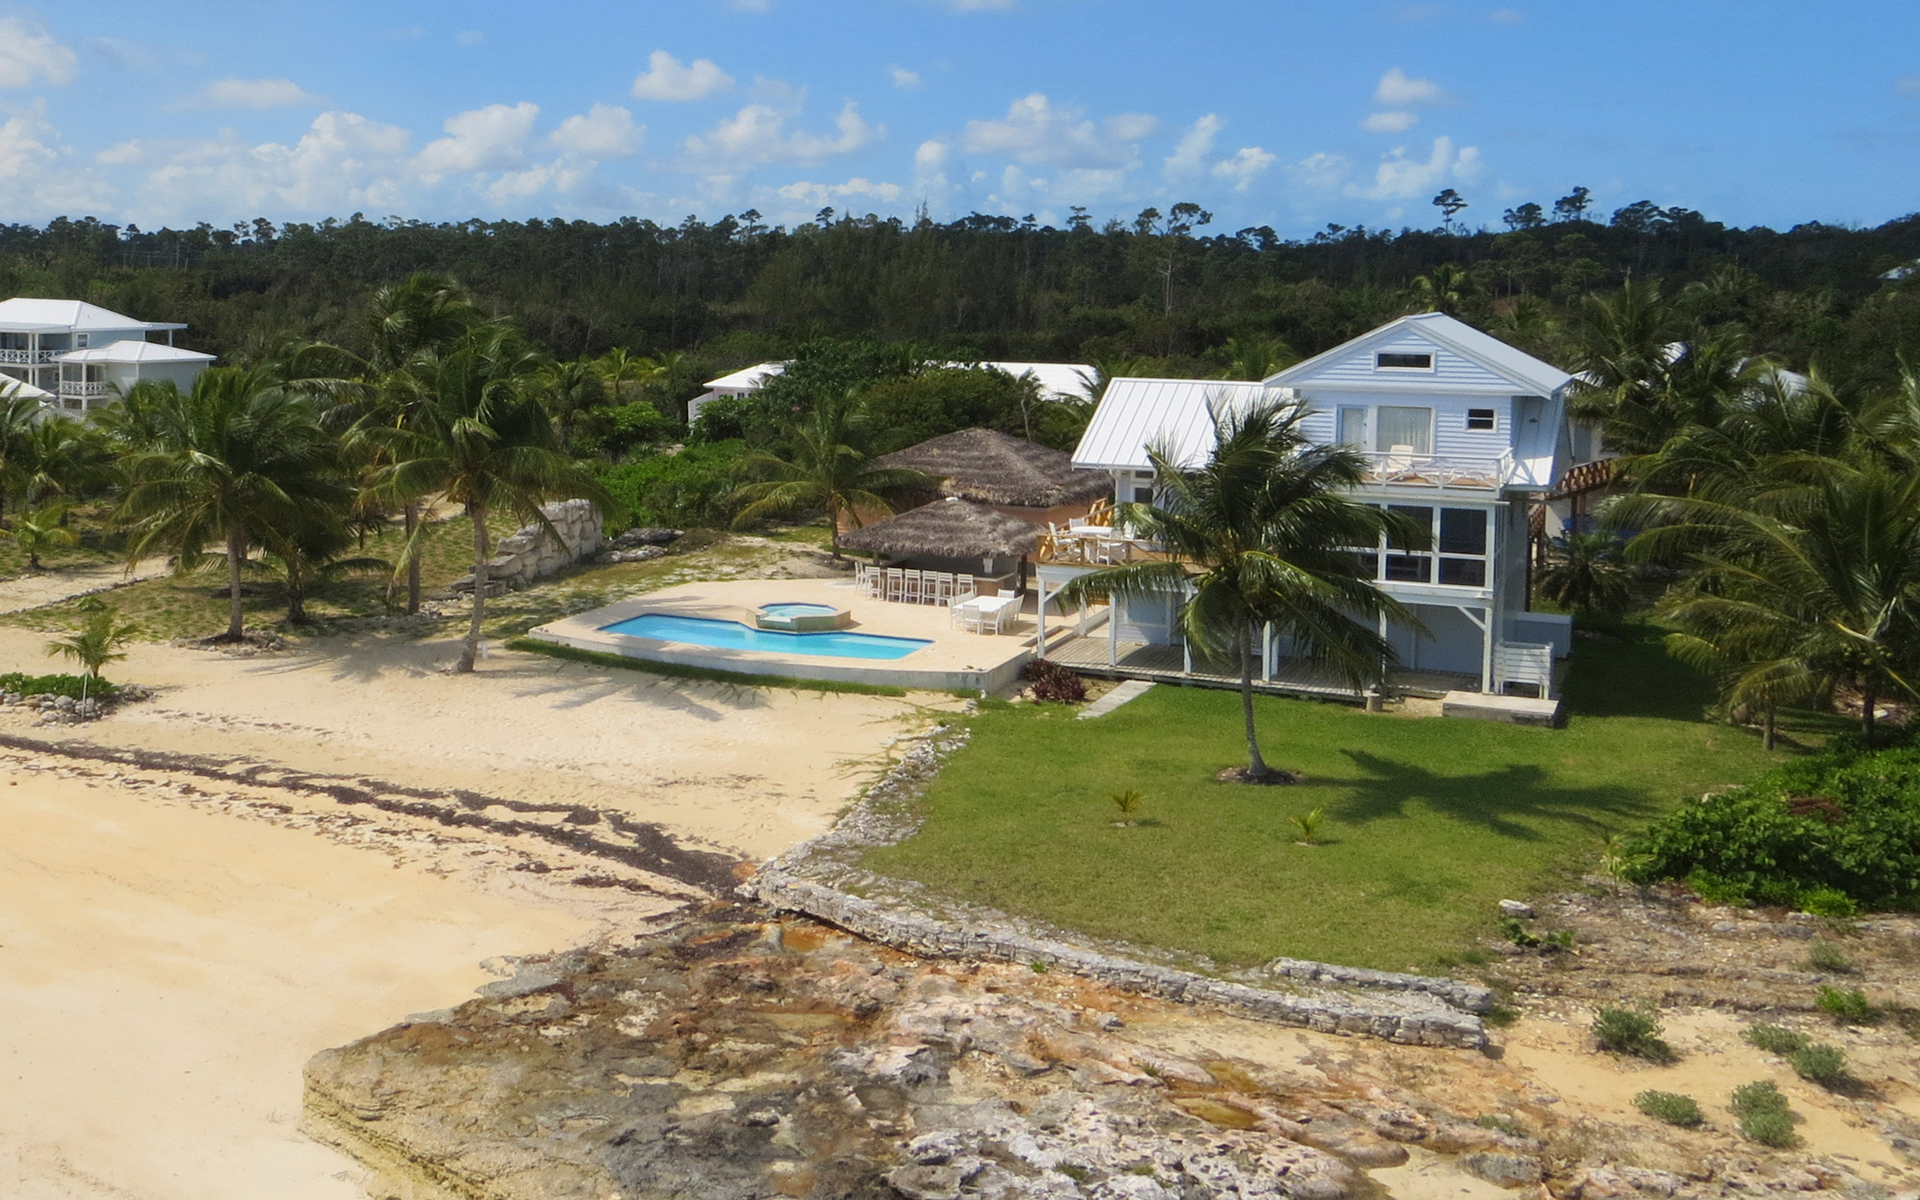 Частный дом для того Продажа на Palmetto Beach Estate, Abaco Island, Bahamas. Turnkey Estate Abaco, Багамские Острова